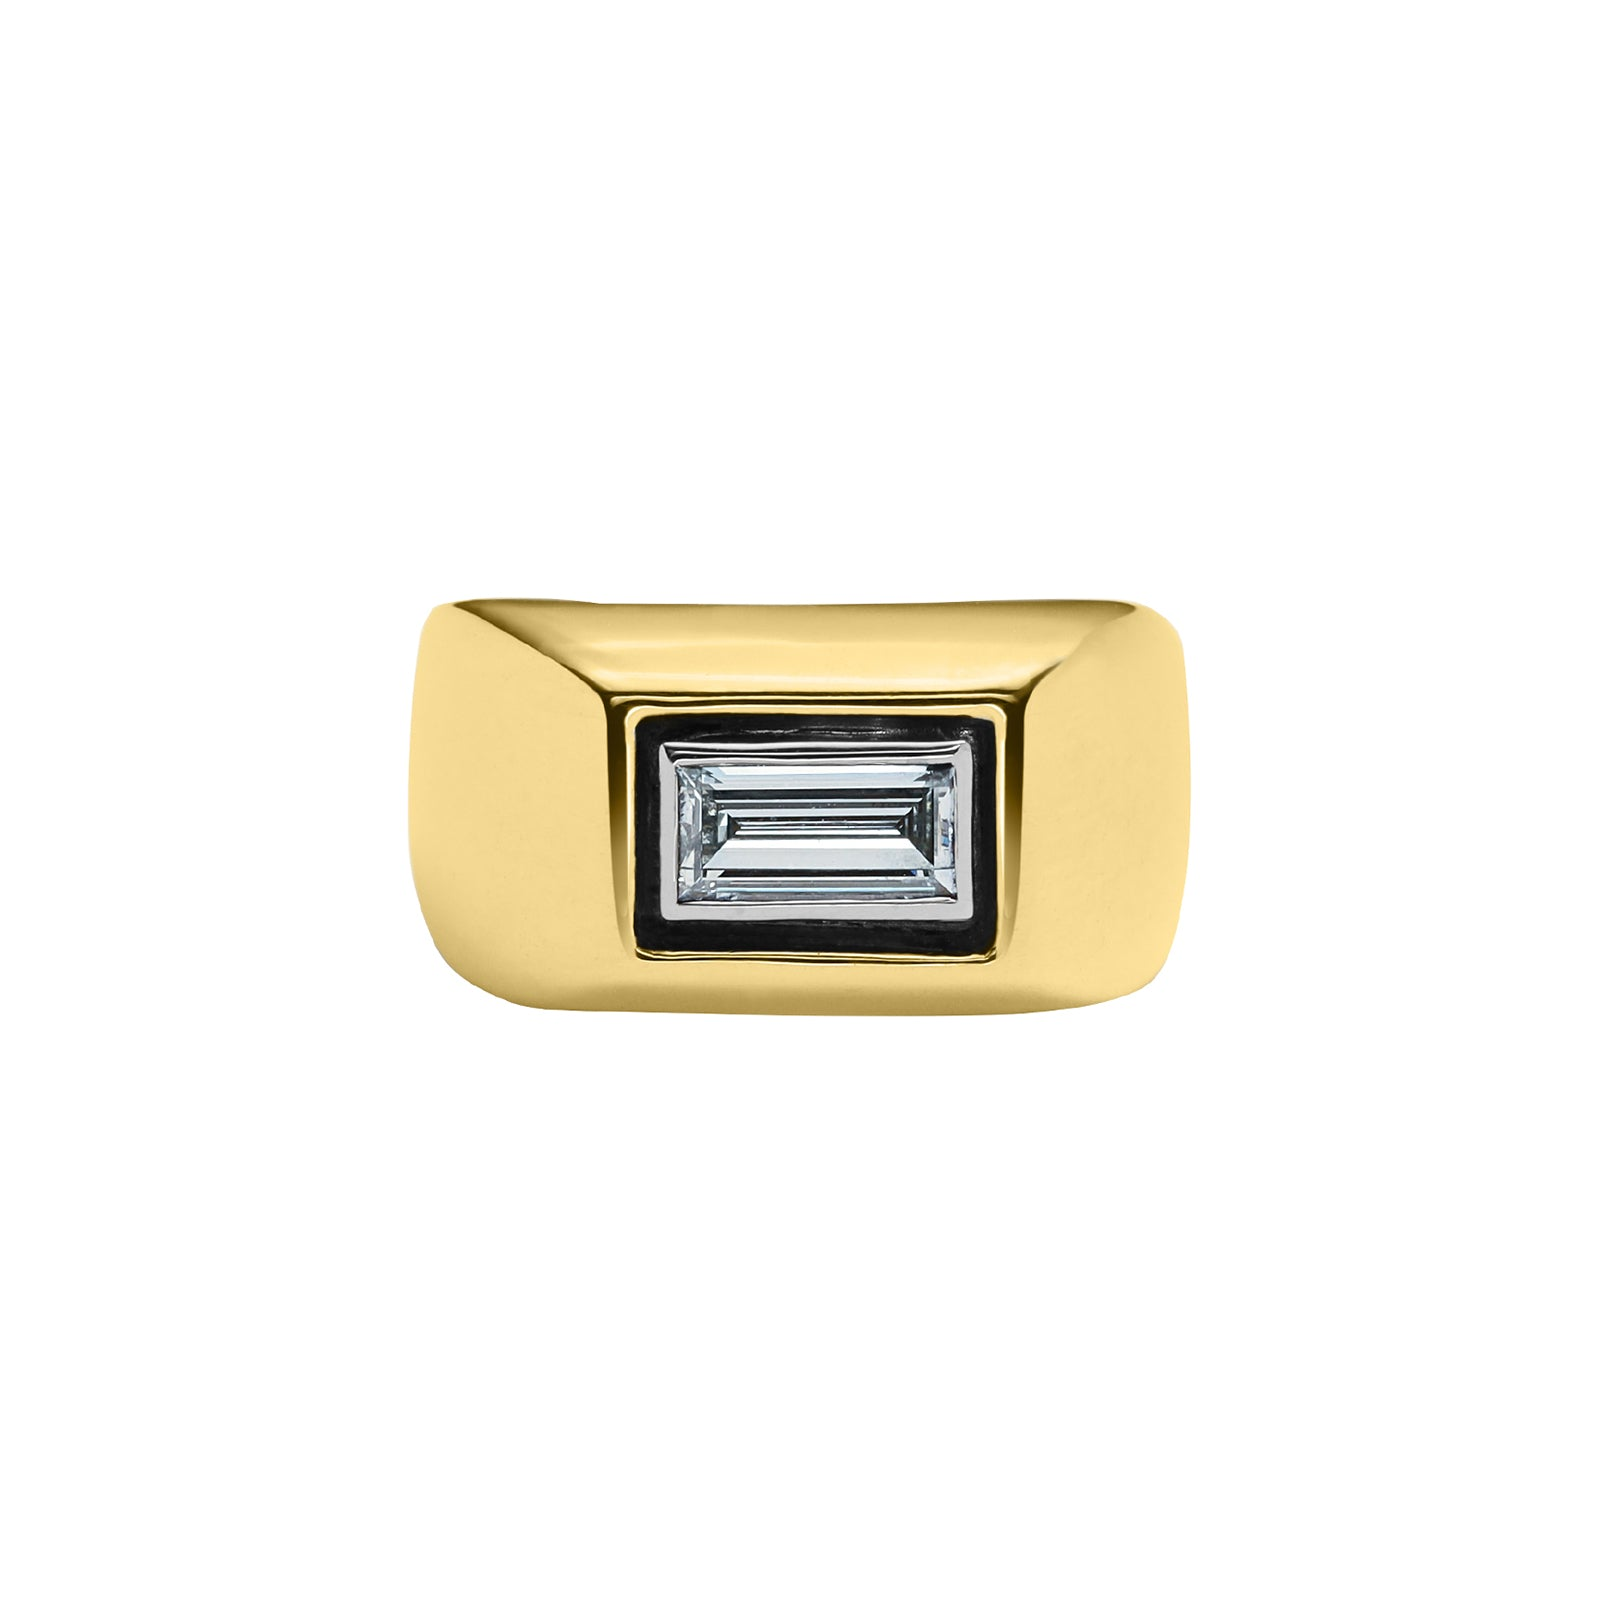 Nina Runsdorf All That Is Emerald Cut Diamond Pinky Ring - Rings - Broken English Jewelry